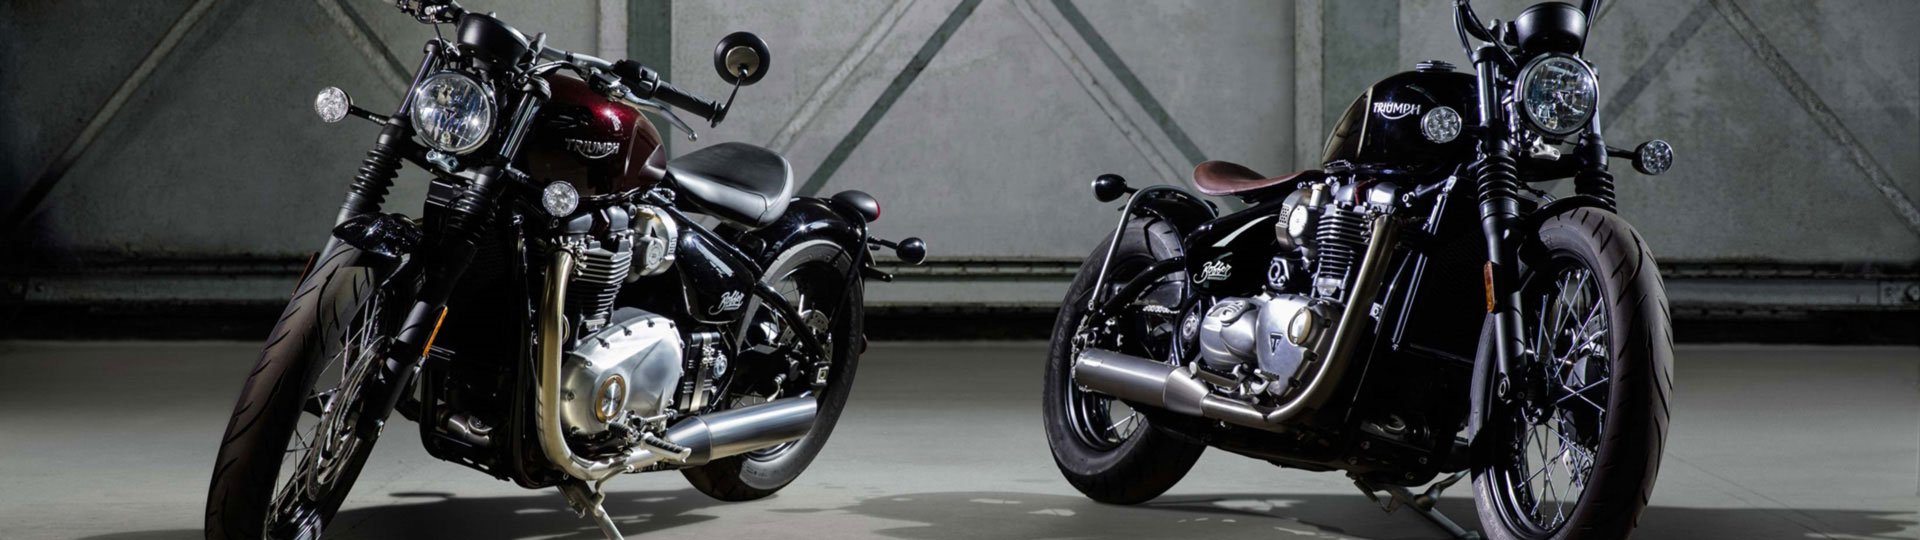 The Bobber Time is arriving